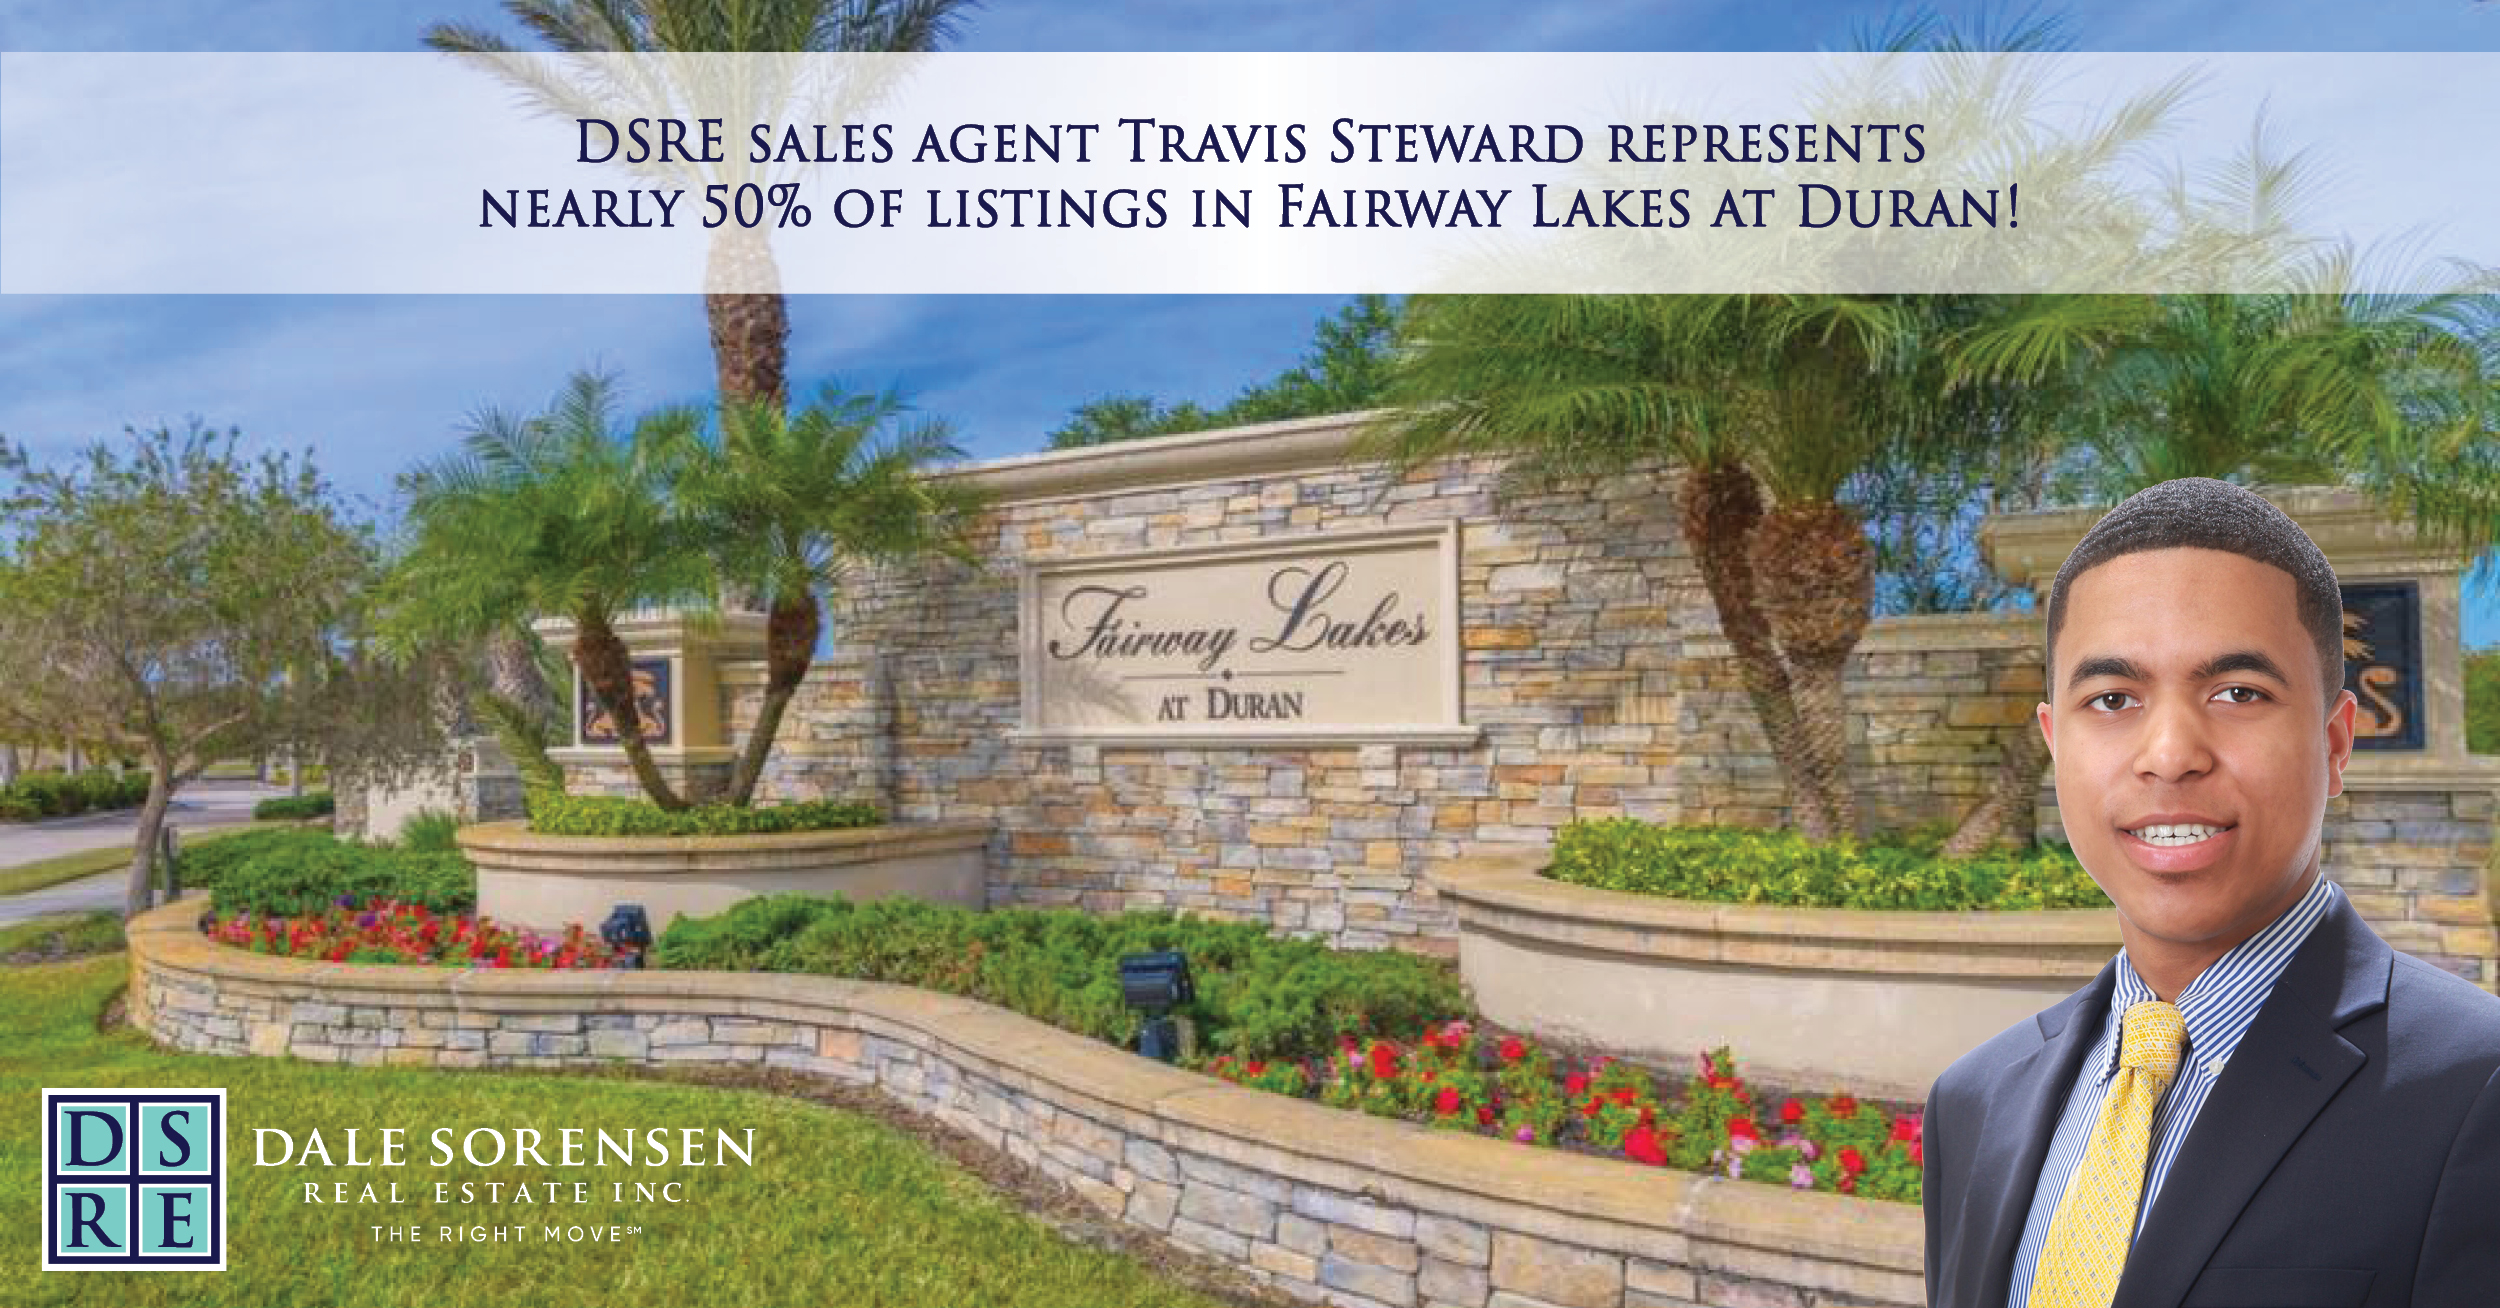 DSRE sales agent Travis Steward represents nearly 50% of listings in Fairway Lakes at Duran